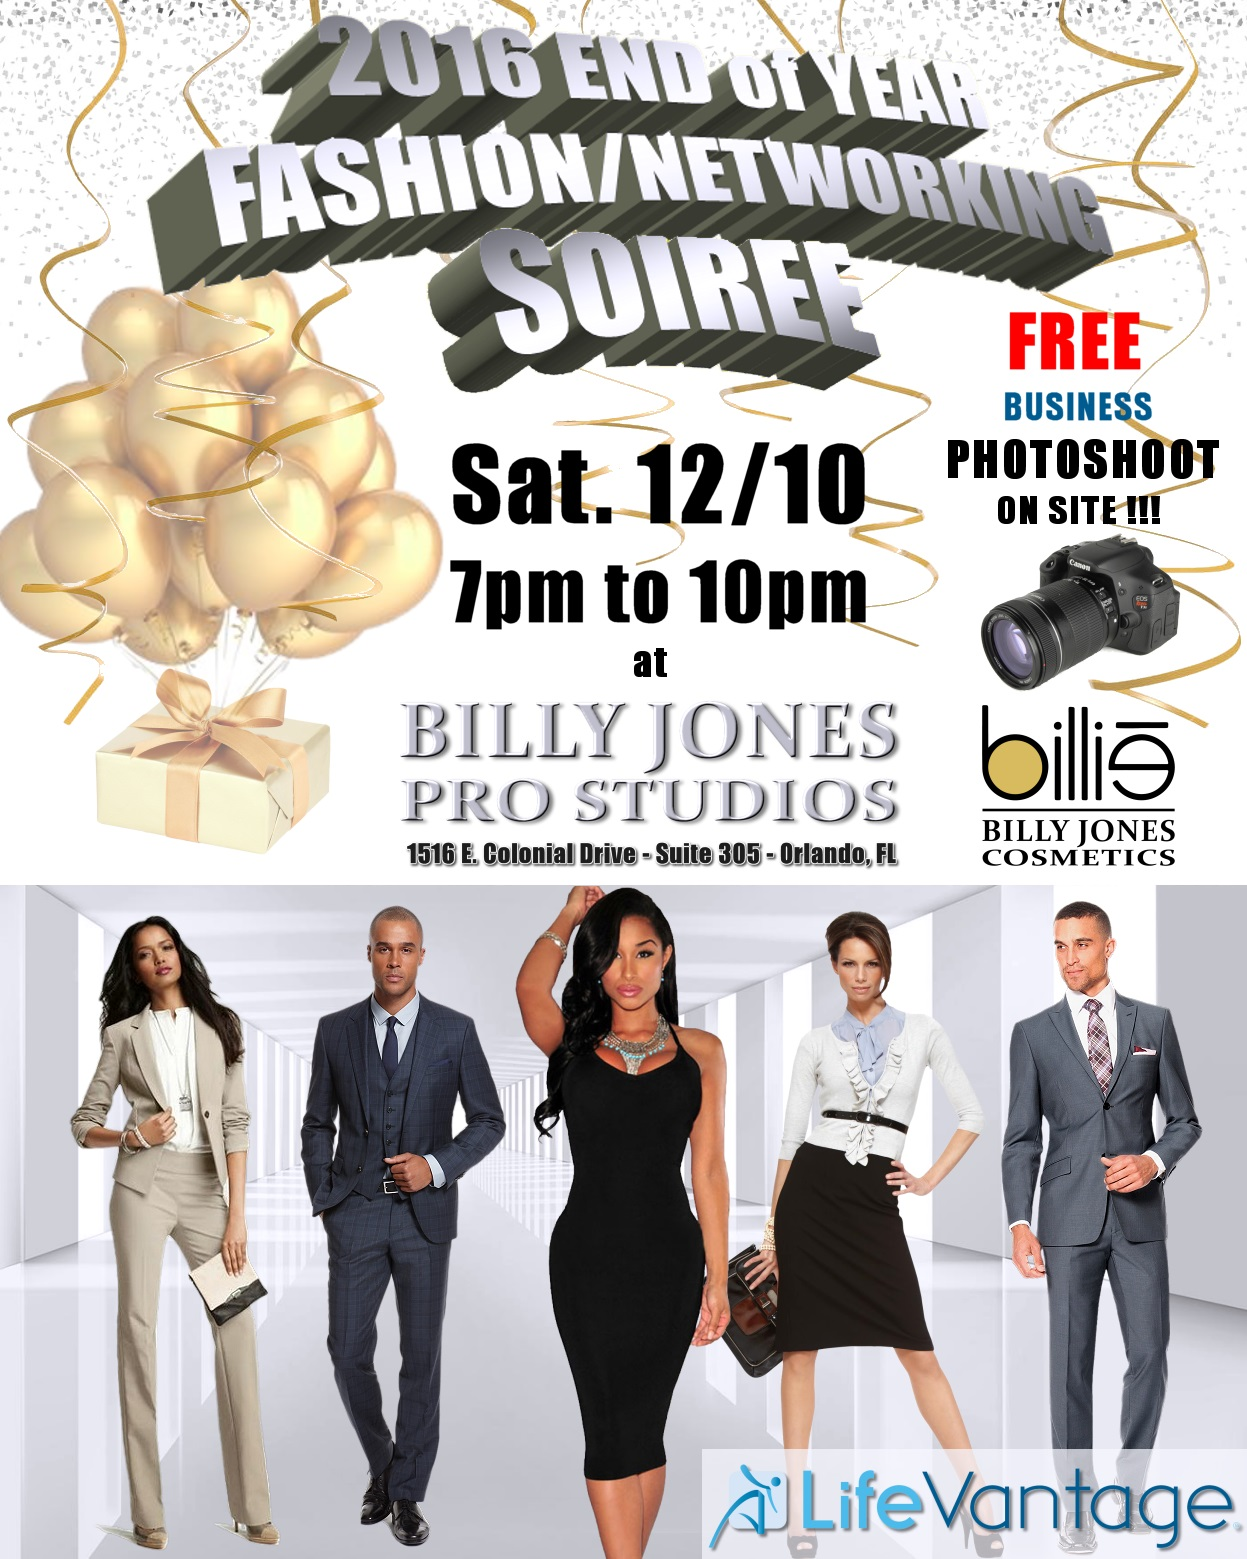 2016 End of Year Fashion Networking Soirée